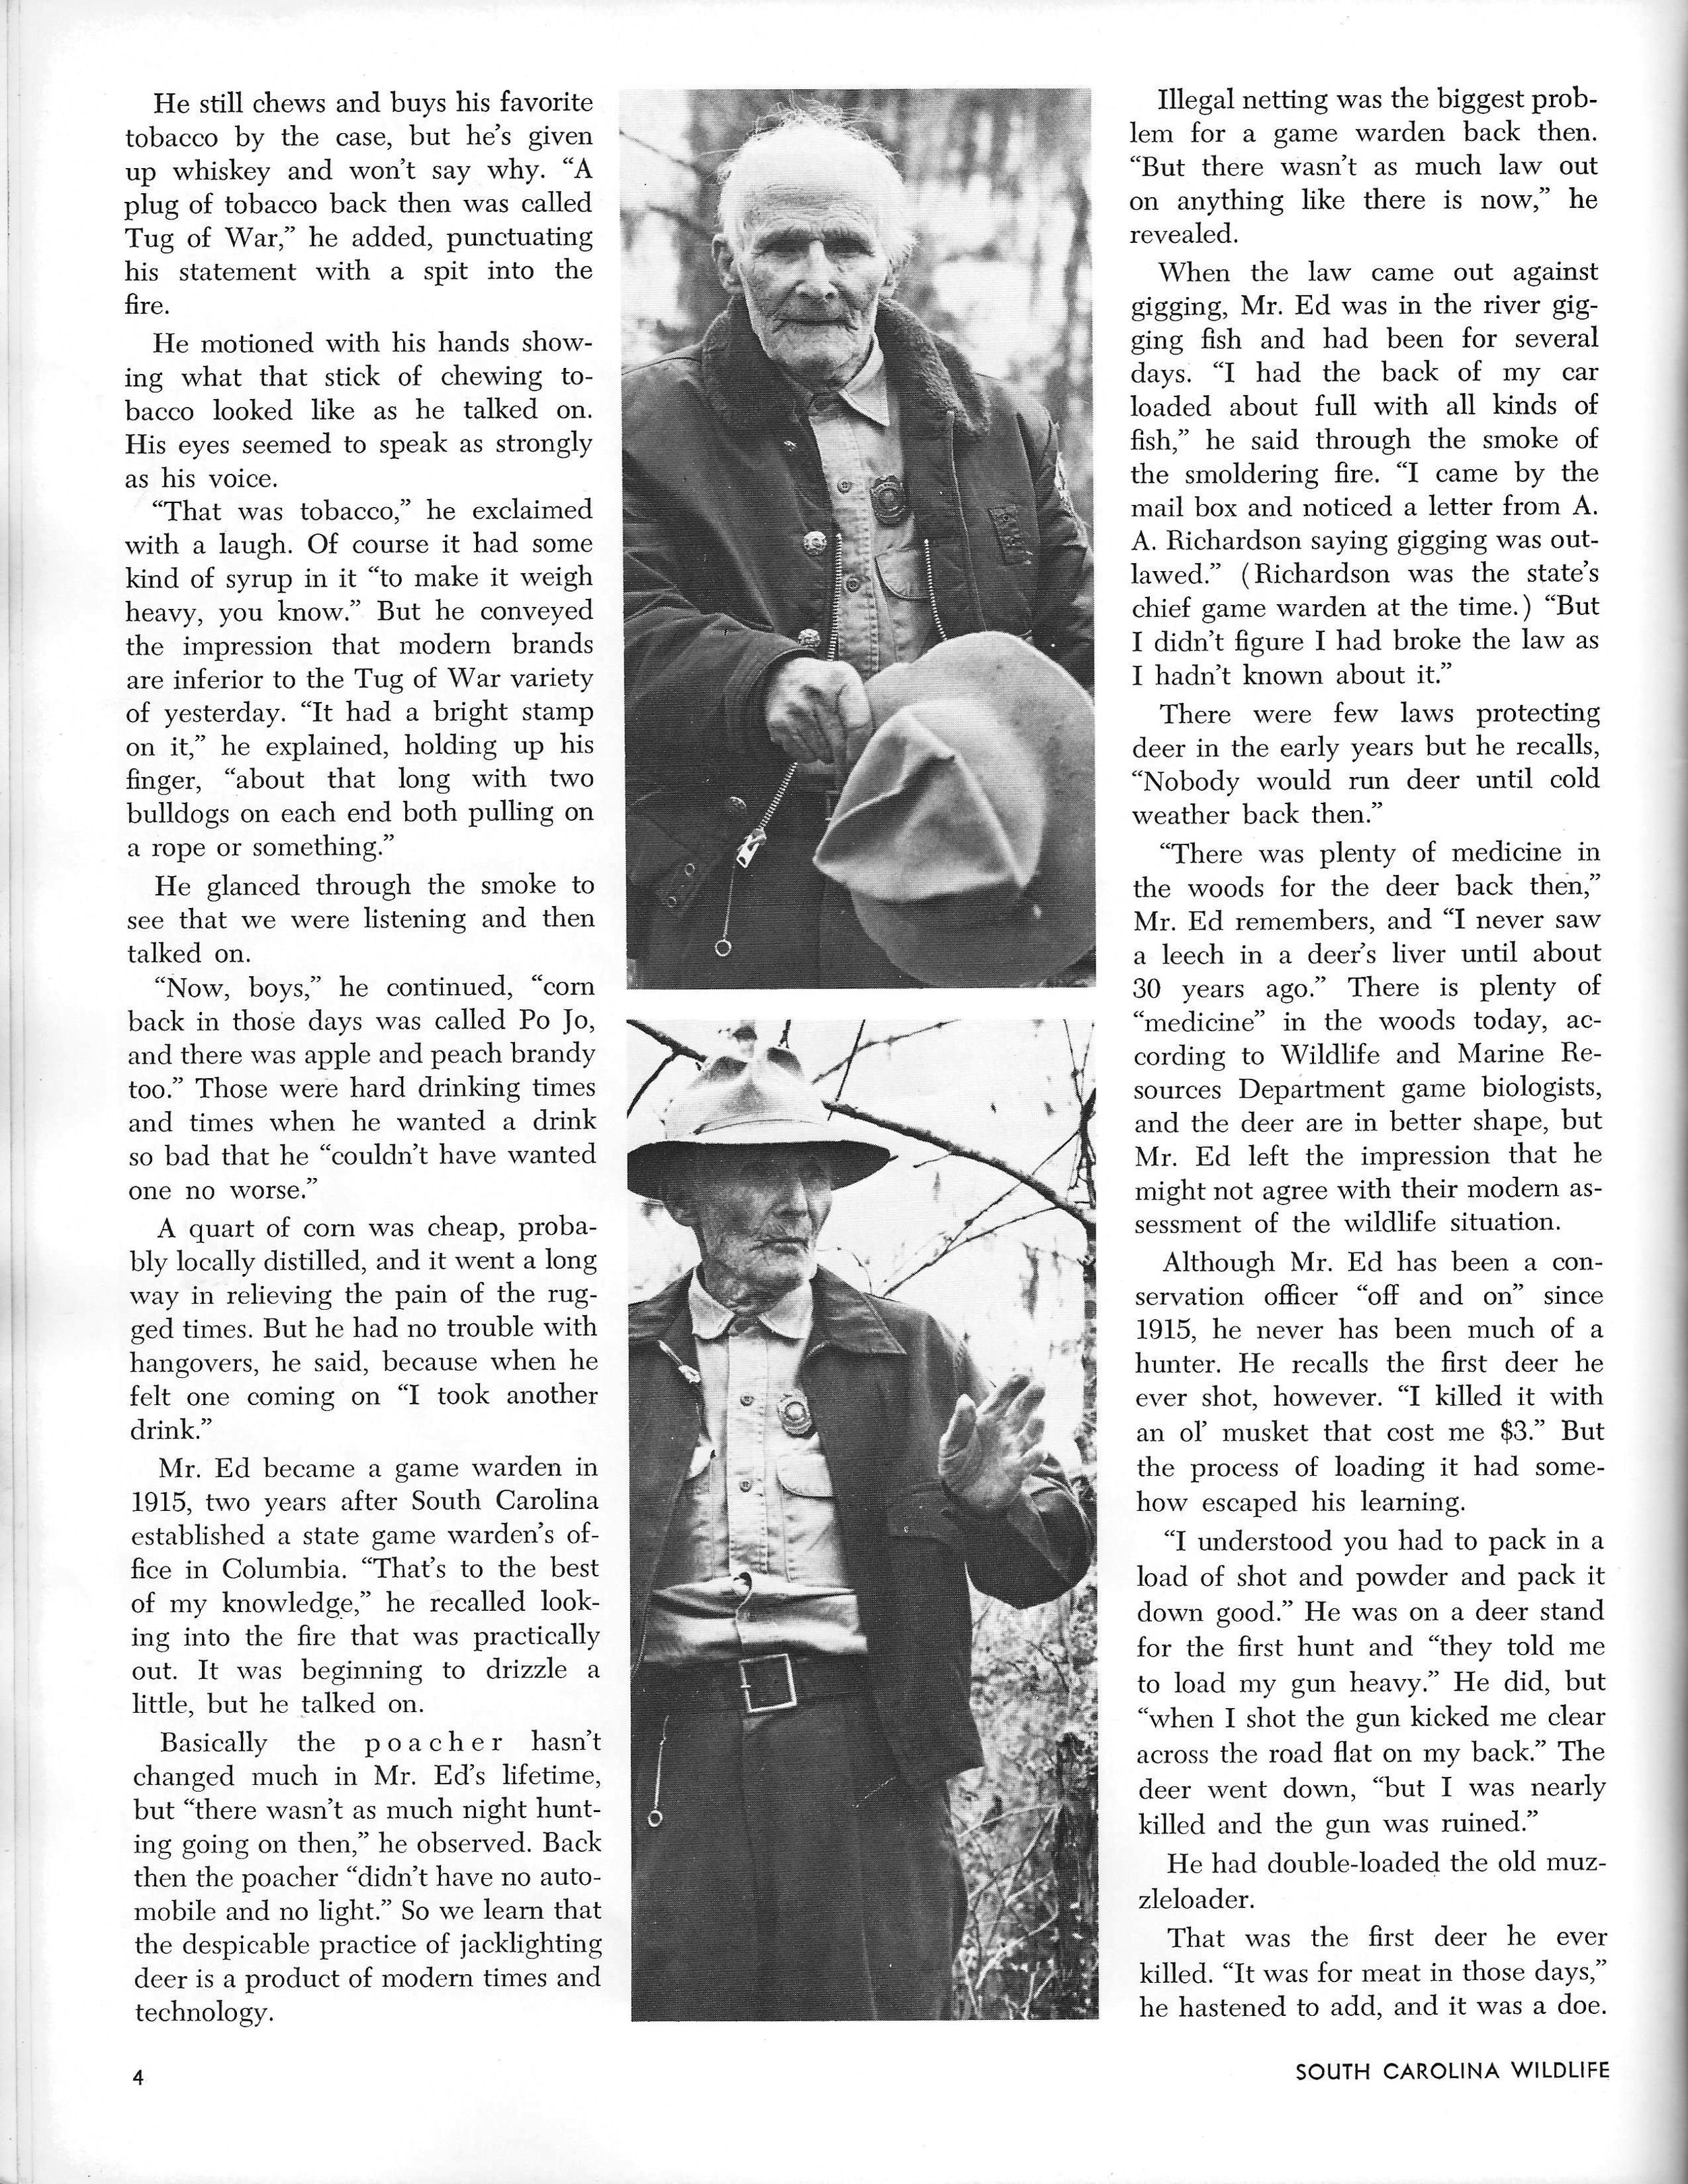 SCW magazine - January-February 1973 issue, page 3